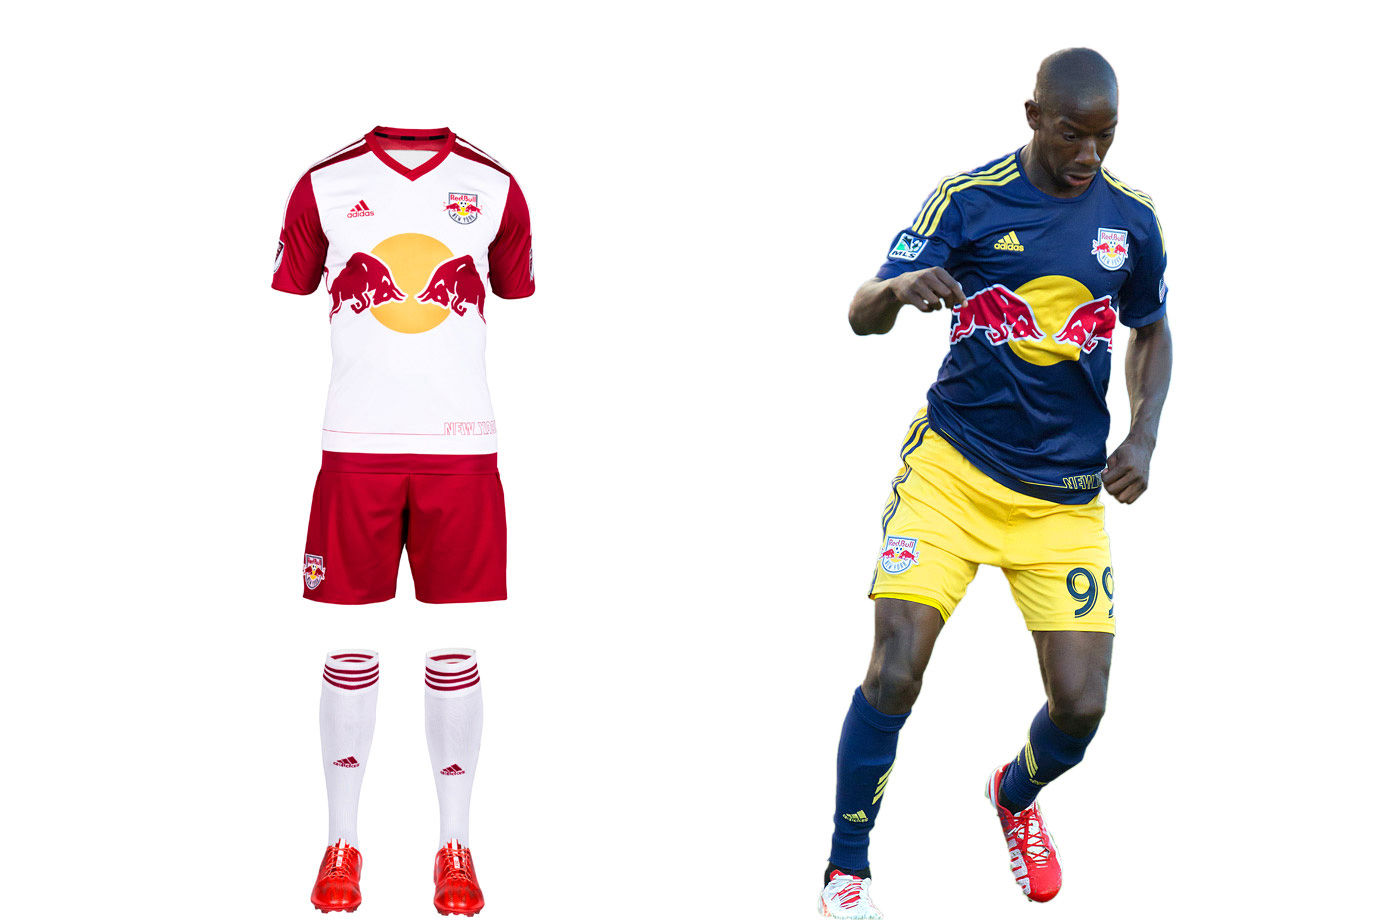 "The Red Bulls have company in New York so have set out to reinforce their tenuous connection to the market within the constraints of the club's corporate brand. The only white-red-white team in the league, RBNY now must compete with NYCFC's pale blue. The Red Bulls' new home set doubles down on that contrast with red sleeves and ""NEW YORK"" emblazoned on the shirt's lower left in a manner ""mimicking the iconic New York skyline."" The ""EST.1996"" on the back collar reminds fans who was there (or nearby) first. The holdover secondary definitely is unique and is great in reasonable doses."